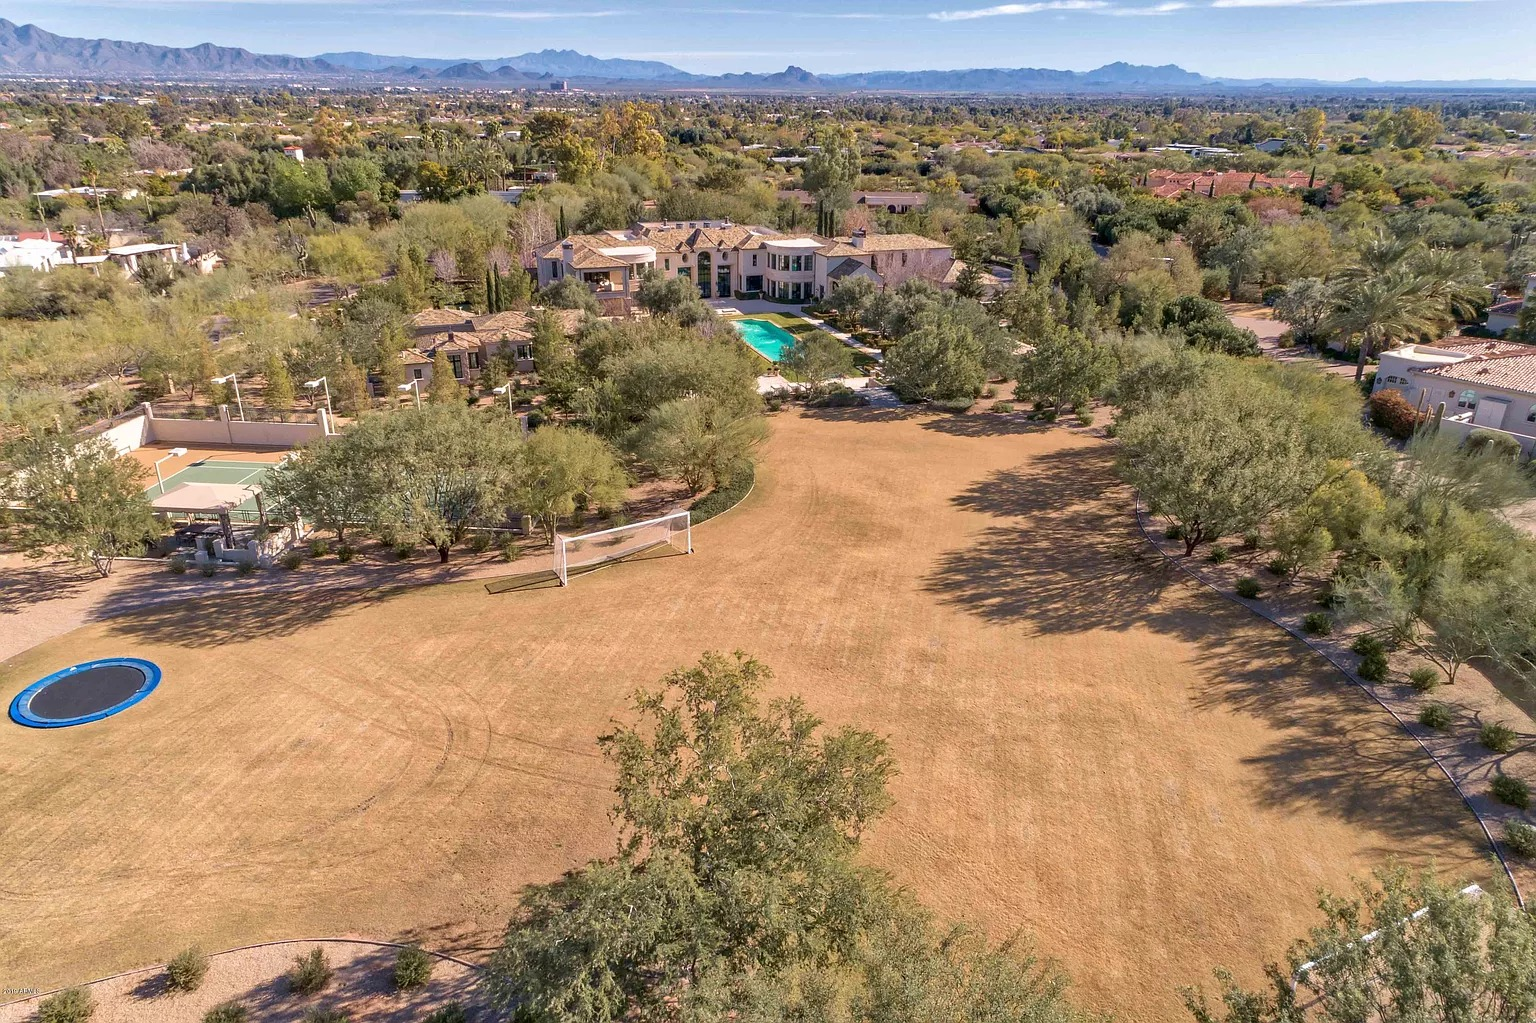 5780 N Saguaro Rd, Paradise Valley, AZ 85253 - $21,000,000 home for sale, house images, photos and pics gallery